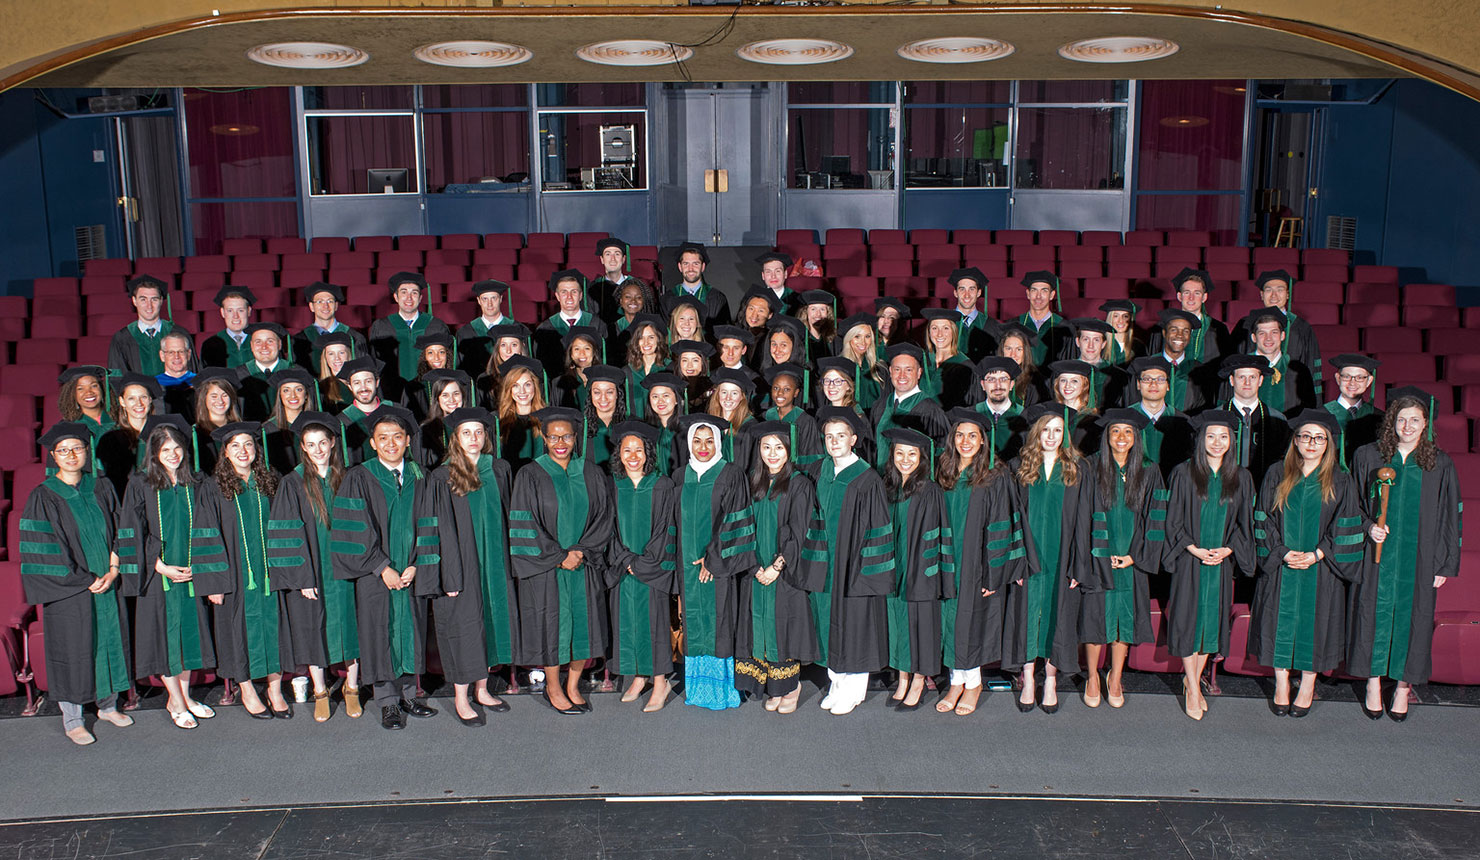 The Geisel MD Class of 2017 (Photo by Flying Squirrel Photography)